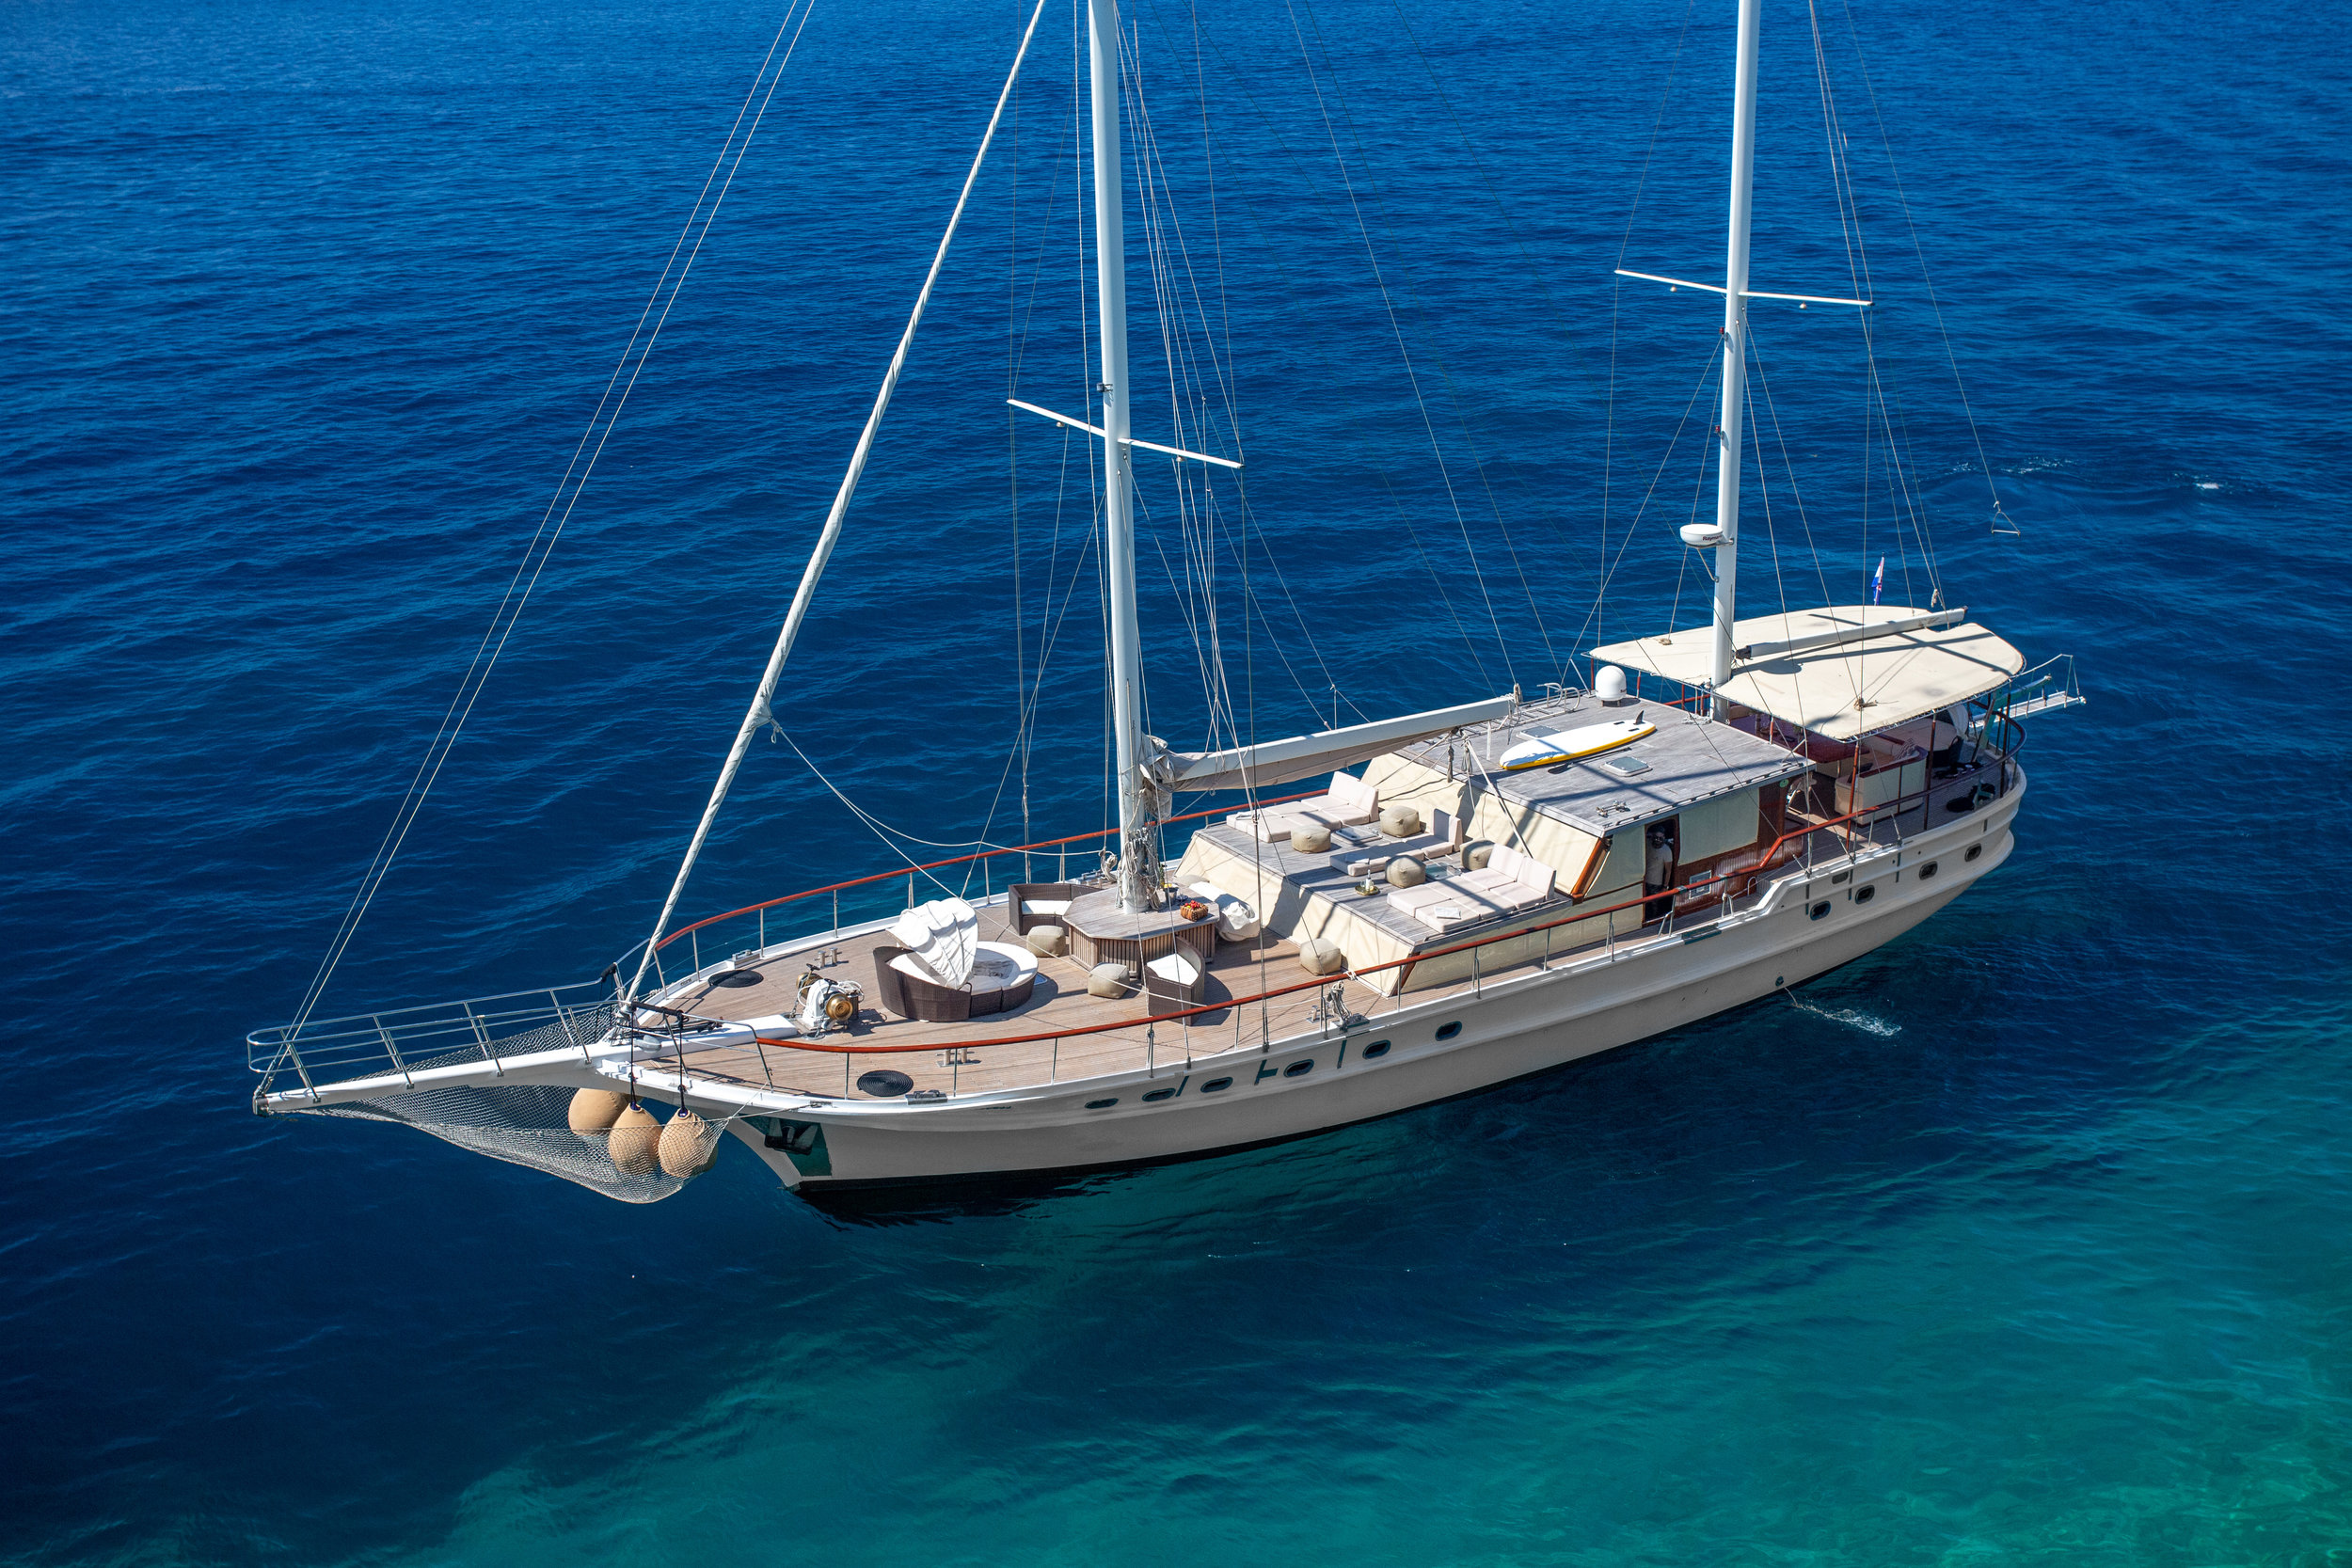 GULET SUMMER PRINCESS  LOA: 23,90m / 78,90ft  GUEST CABINS: 5 Double  MAX. NUMBER OF GUESTS: 10